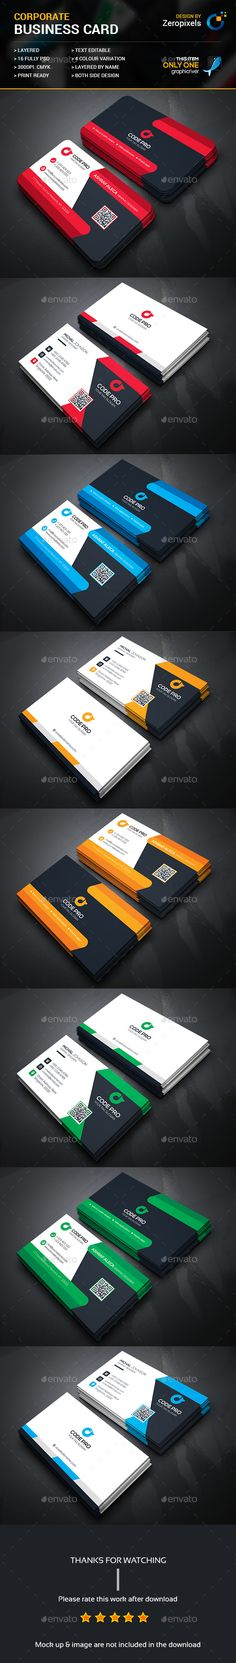 Business Card Template Free Download On Behance Free Business - Editable business card templates free